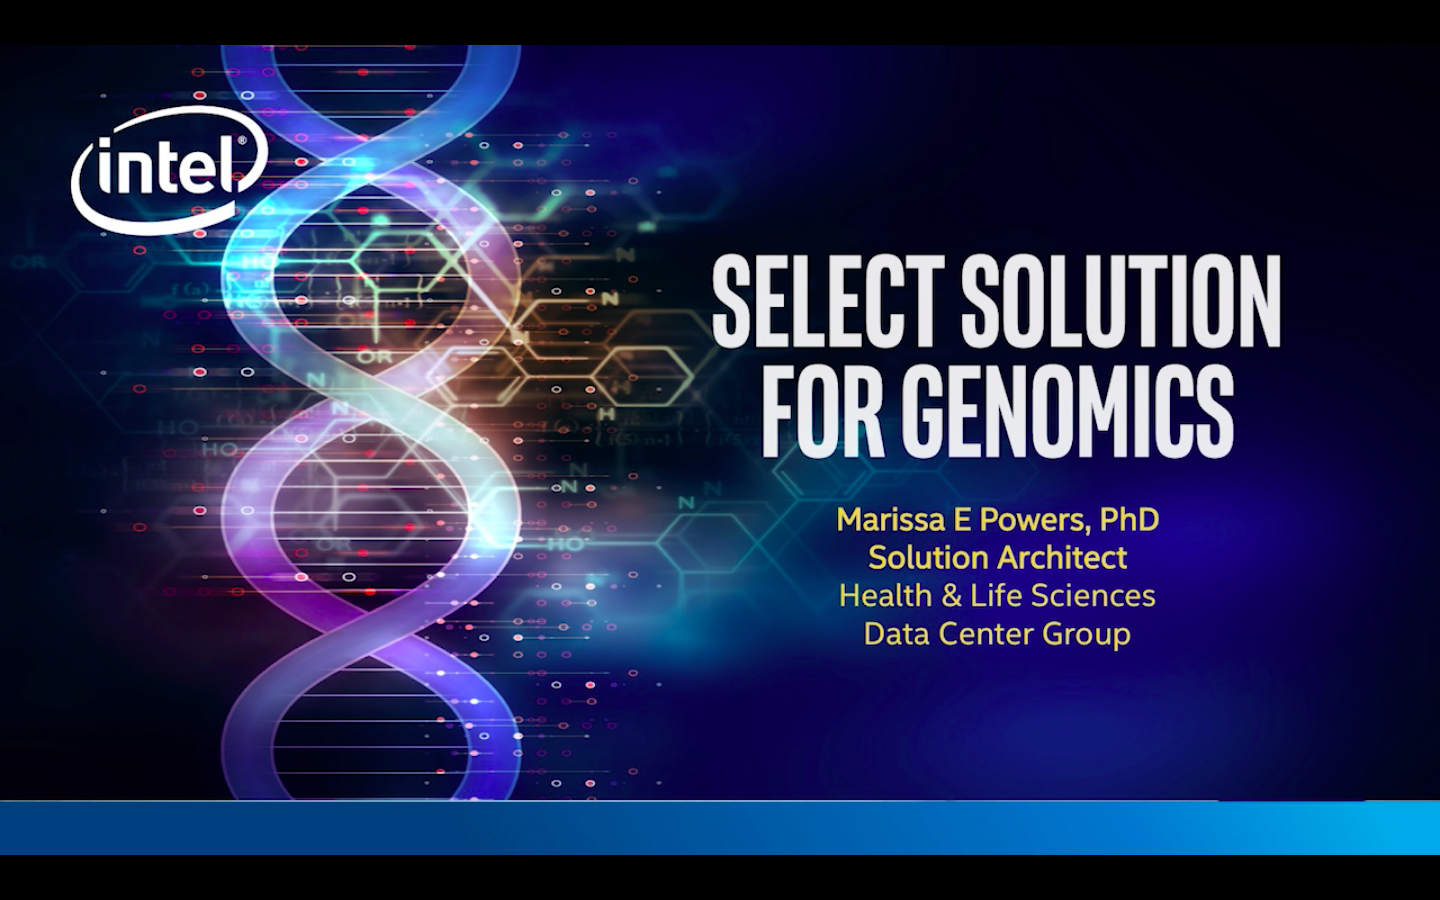 Chapter 1: Intel® Select Solutions for Genomics Analytics